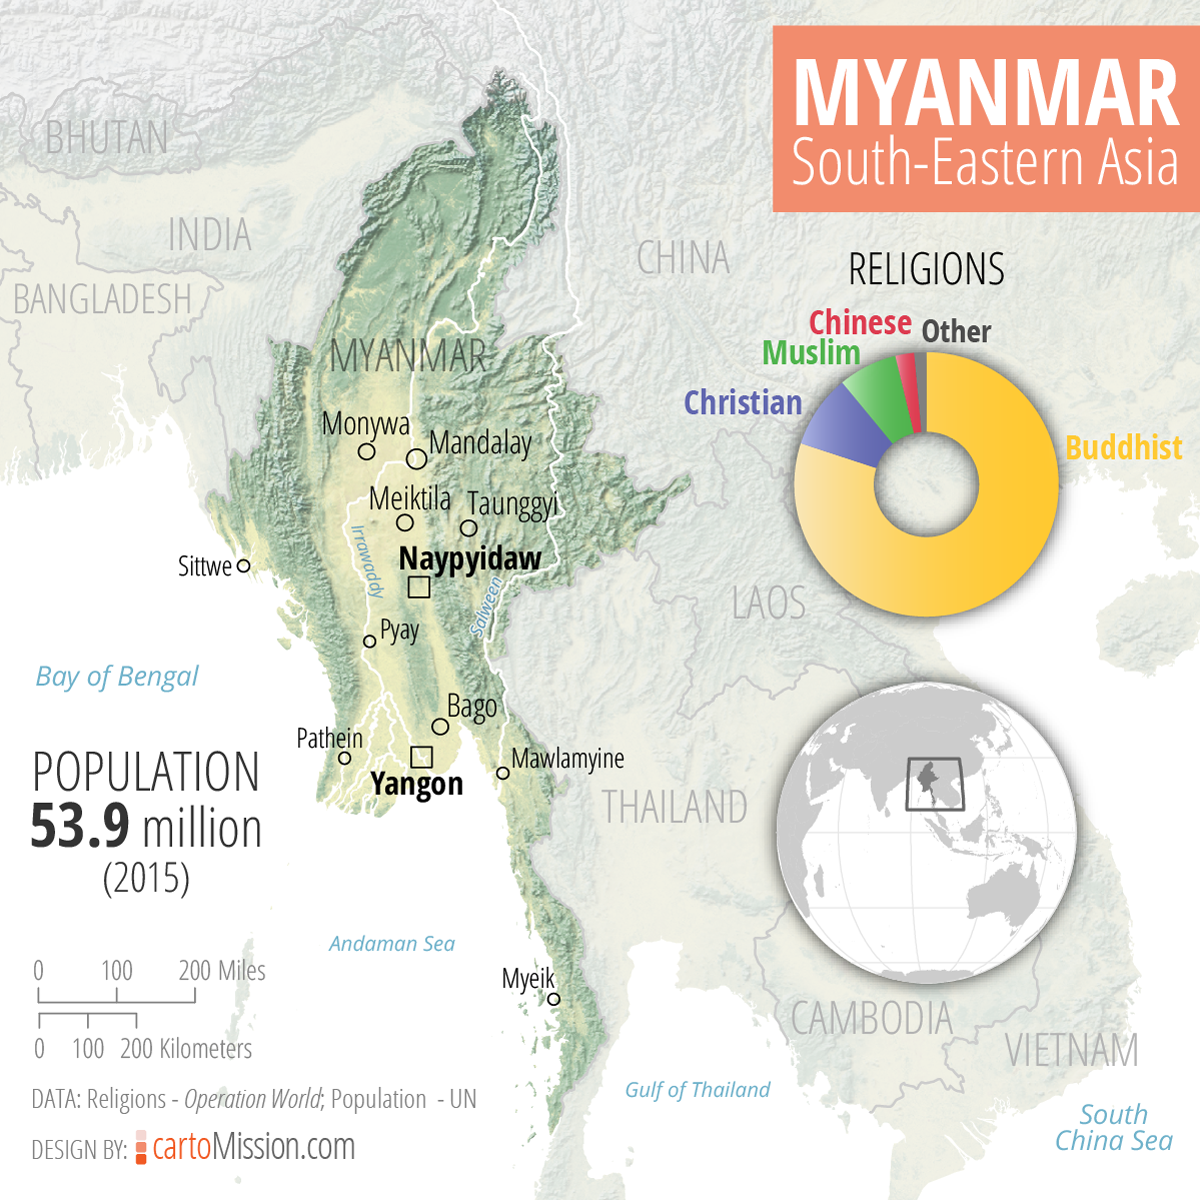 Myanmar cities and religions cartoMission